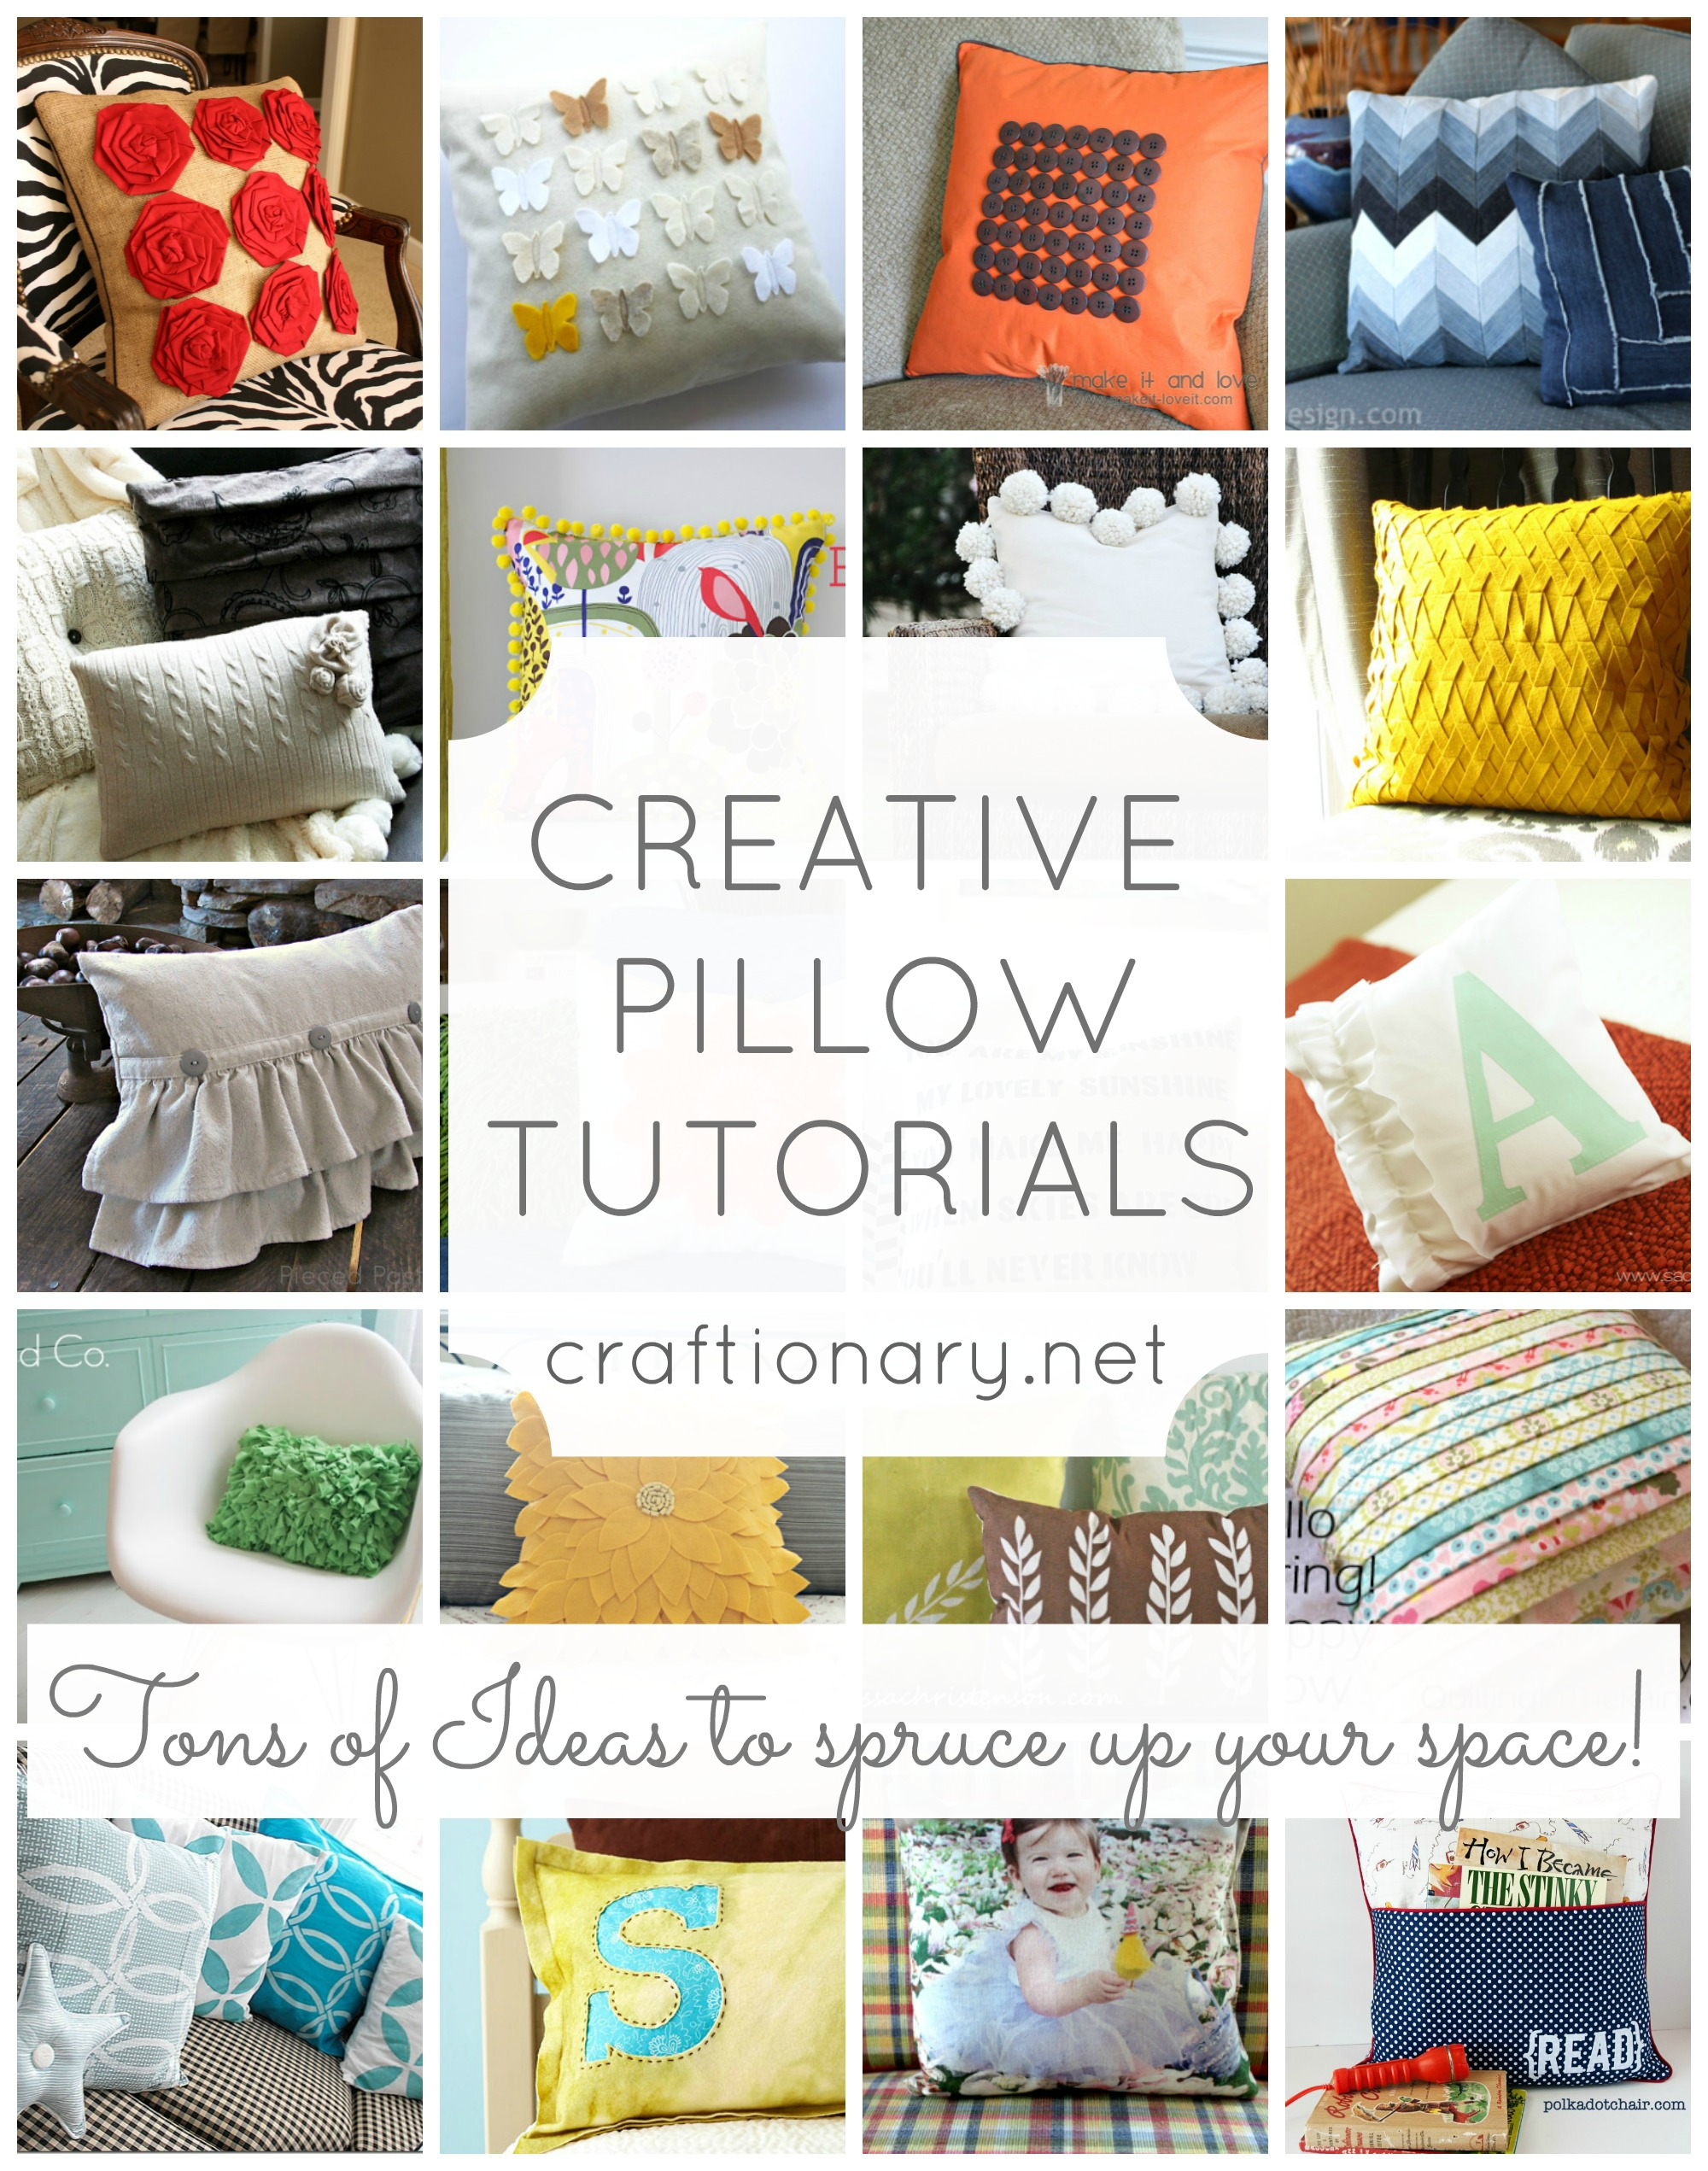 How To Make Cute Decorative Pillows : Craftionary